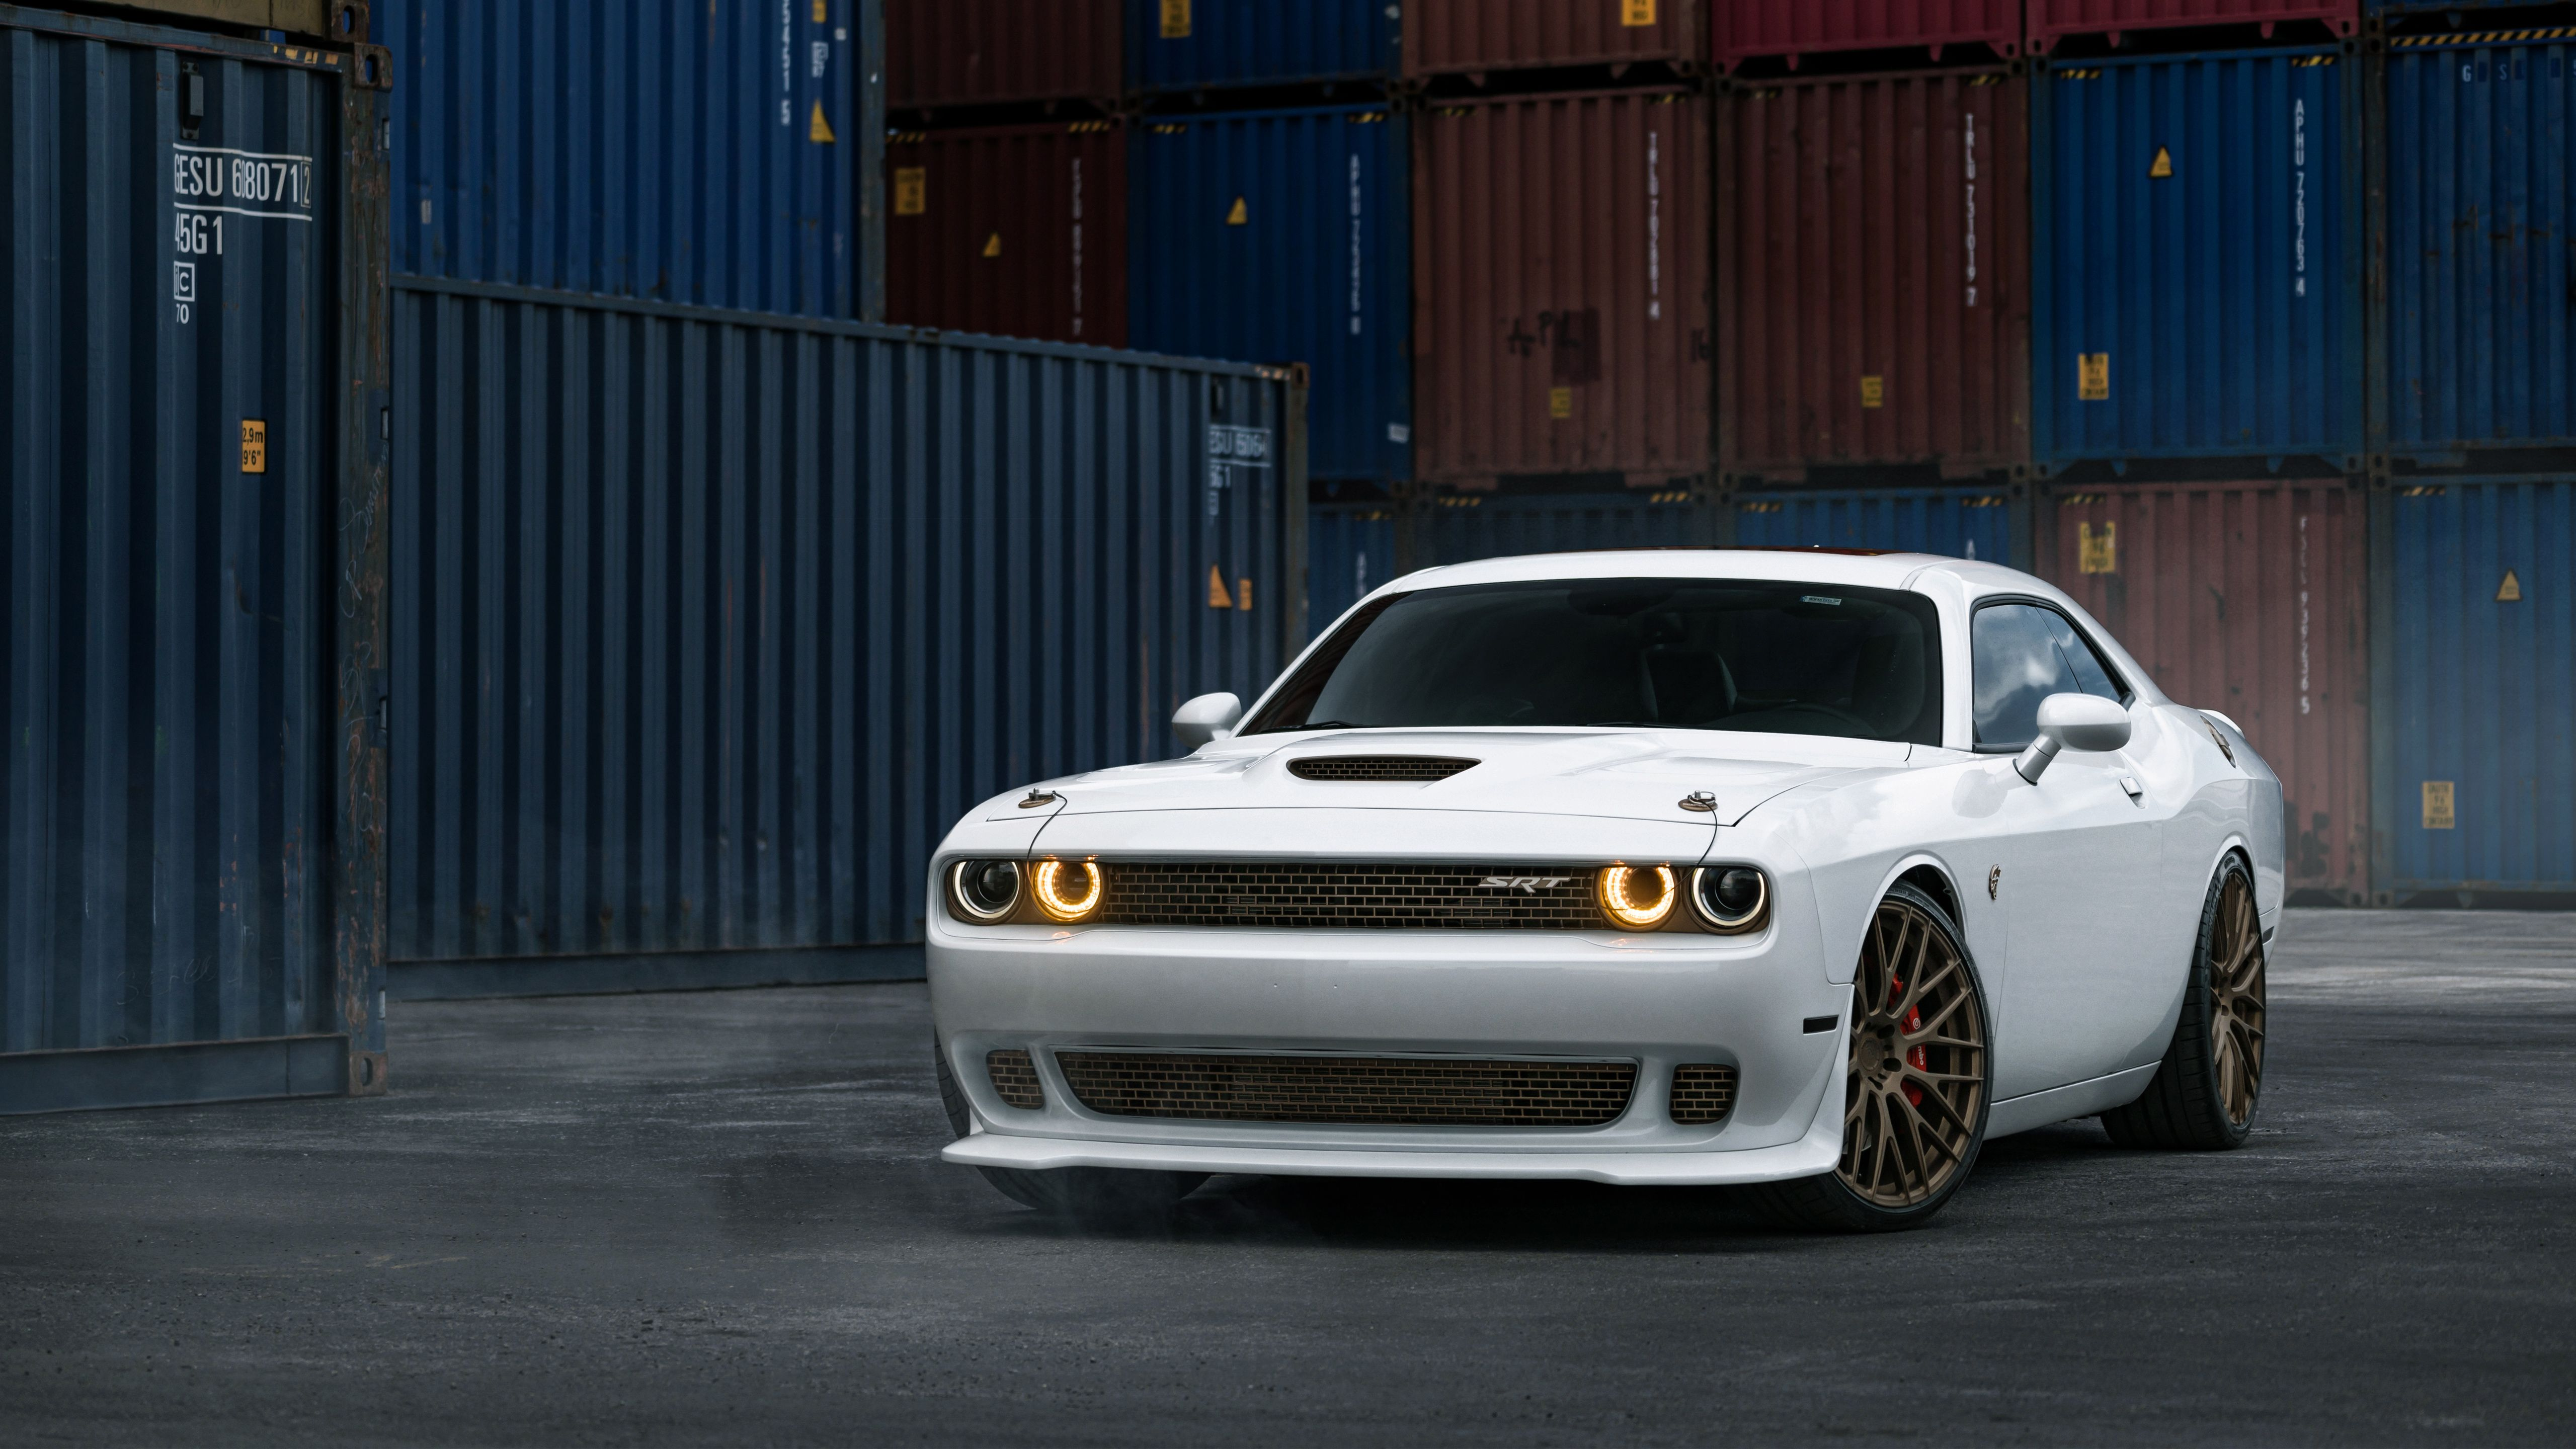 Pin by jud boyd on dodge challenger pinterest dodge challenger mopar and dodge